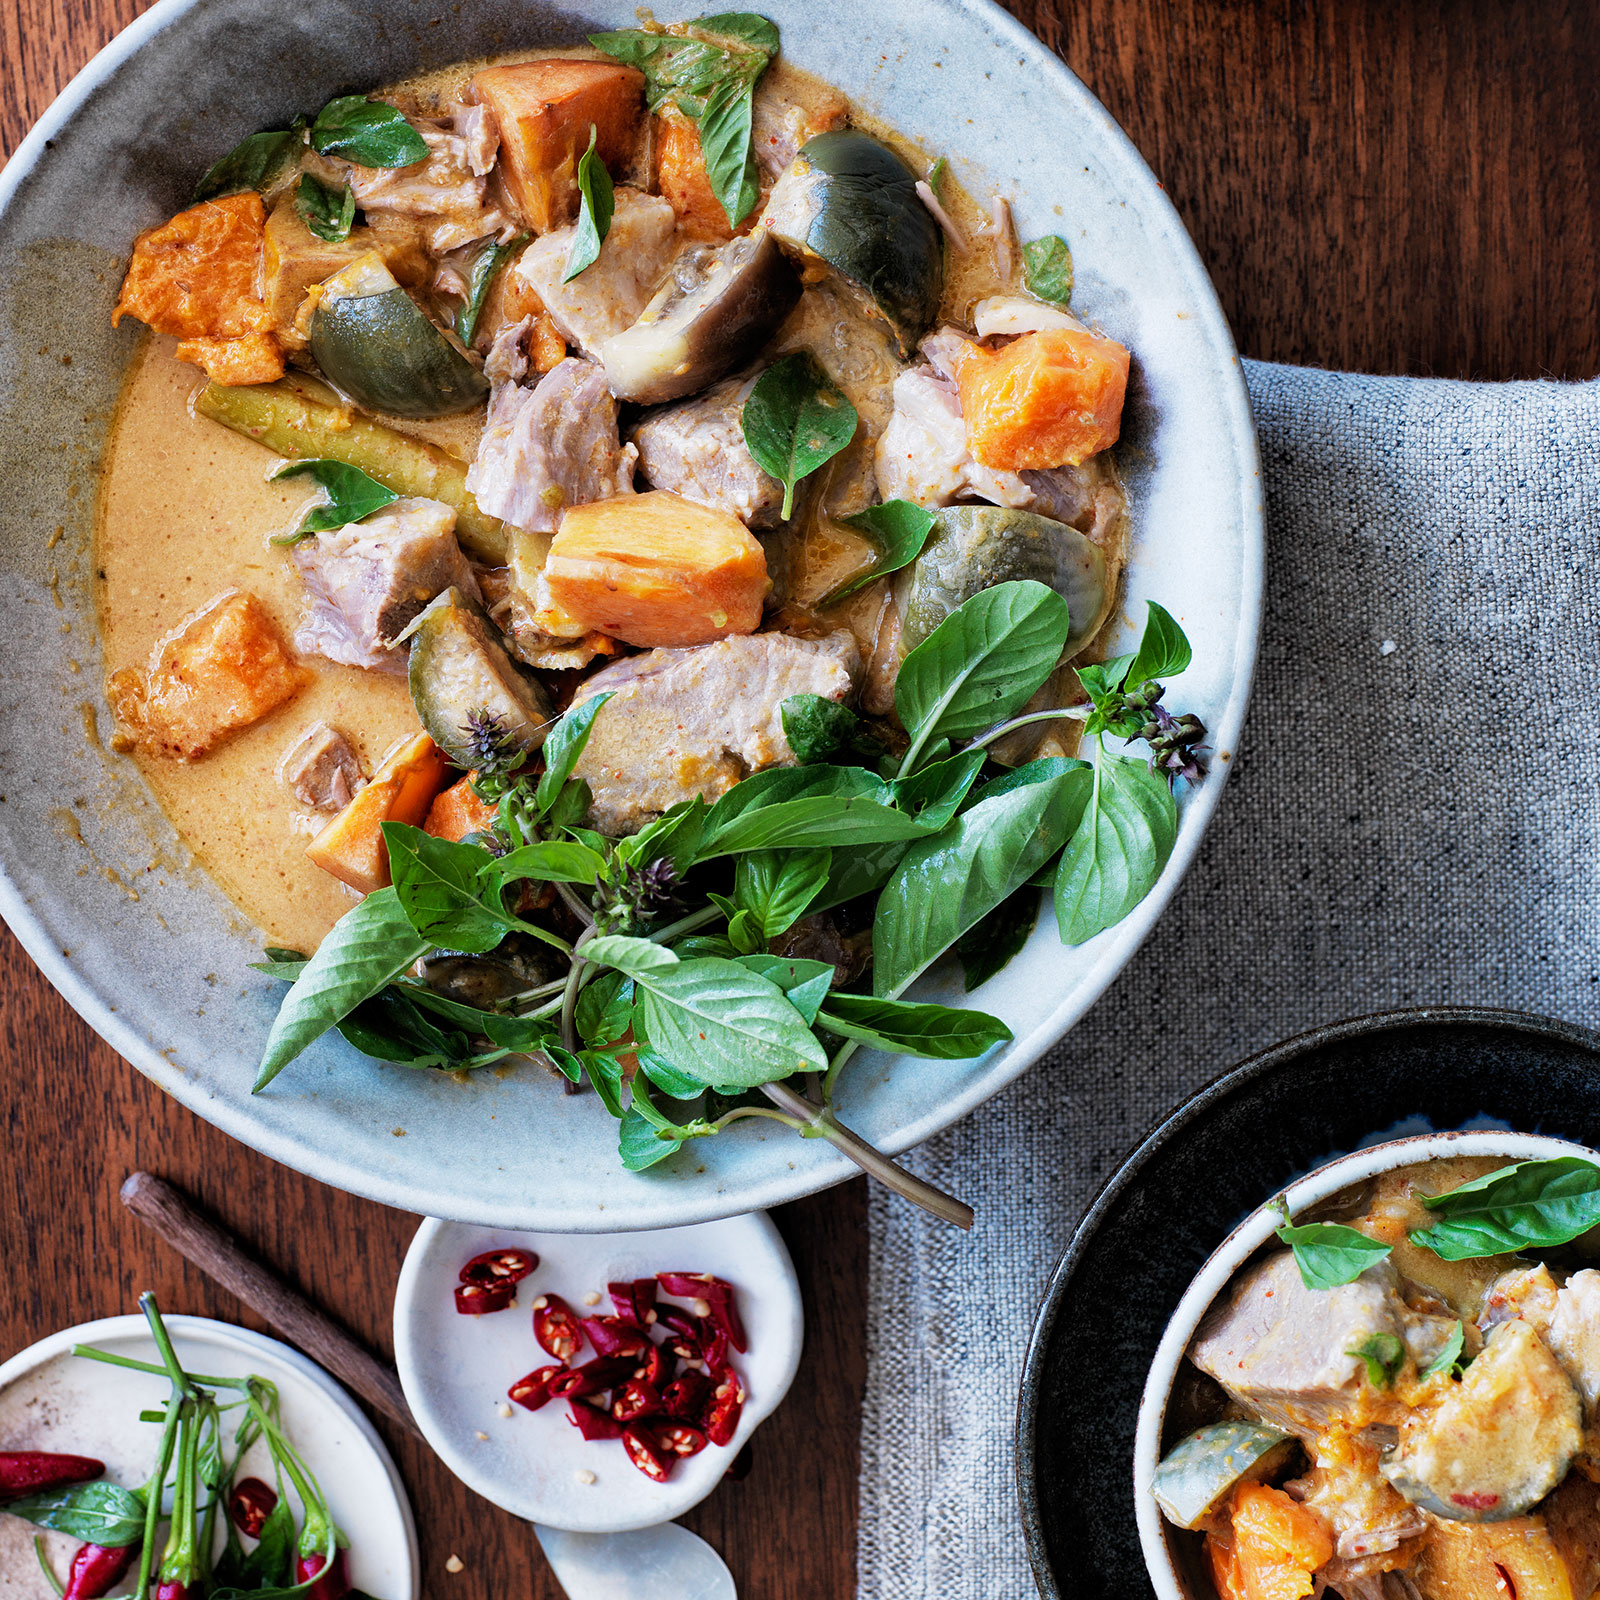 Pork-and-Pineapple Coconut Curry